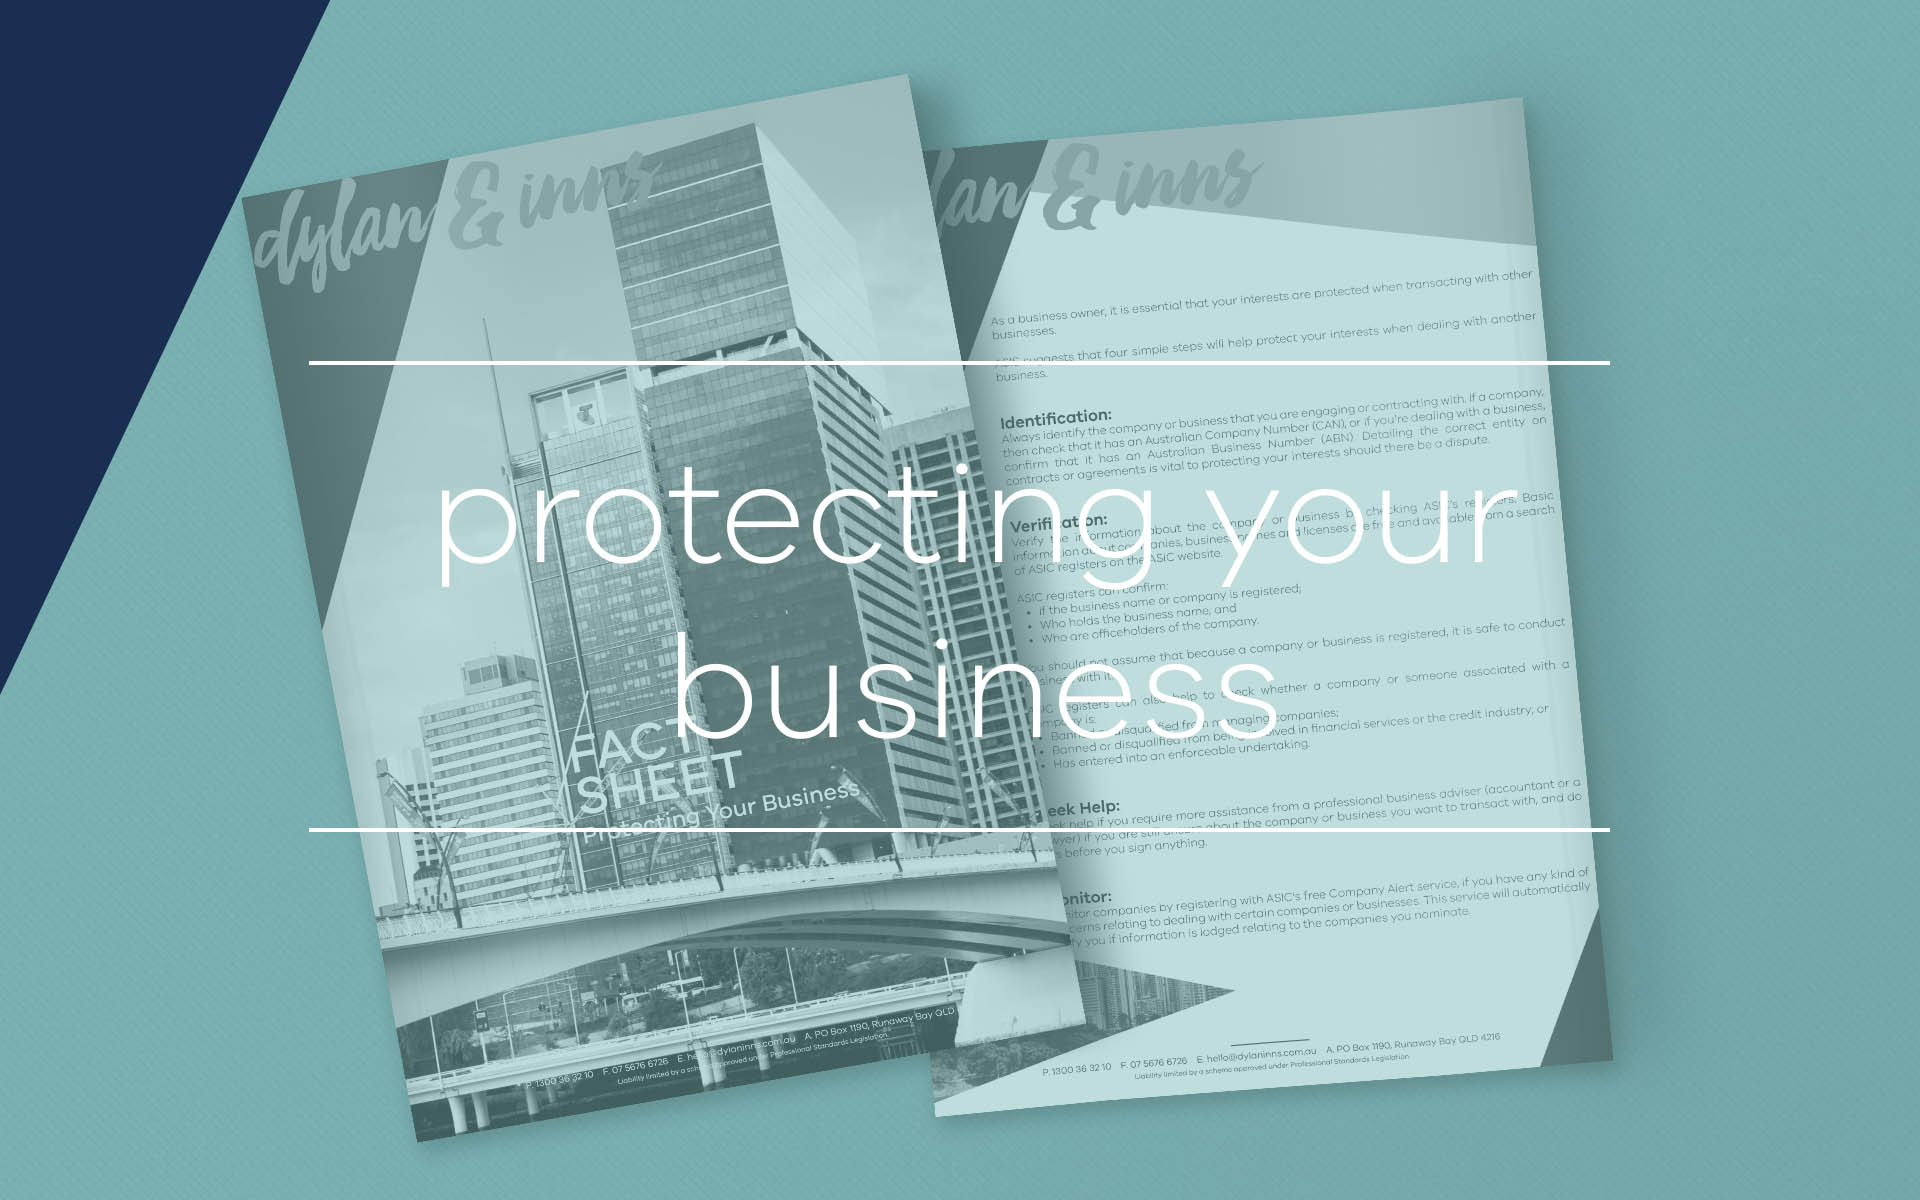 When making the decision to start a new business there are several legal issues that a commercial lawyer can assist you with to best protect your new business.